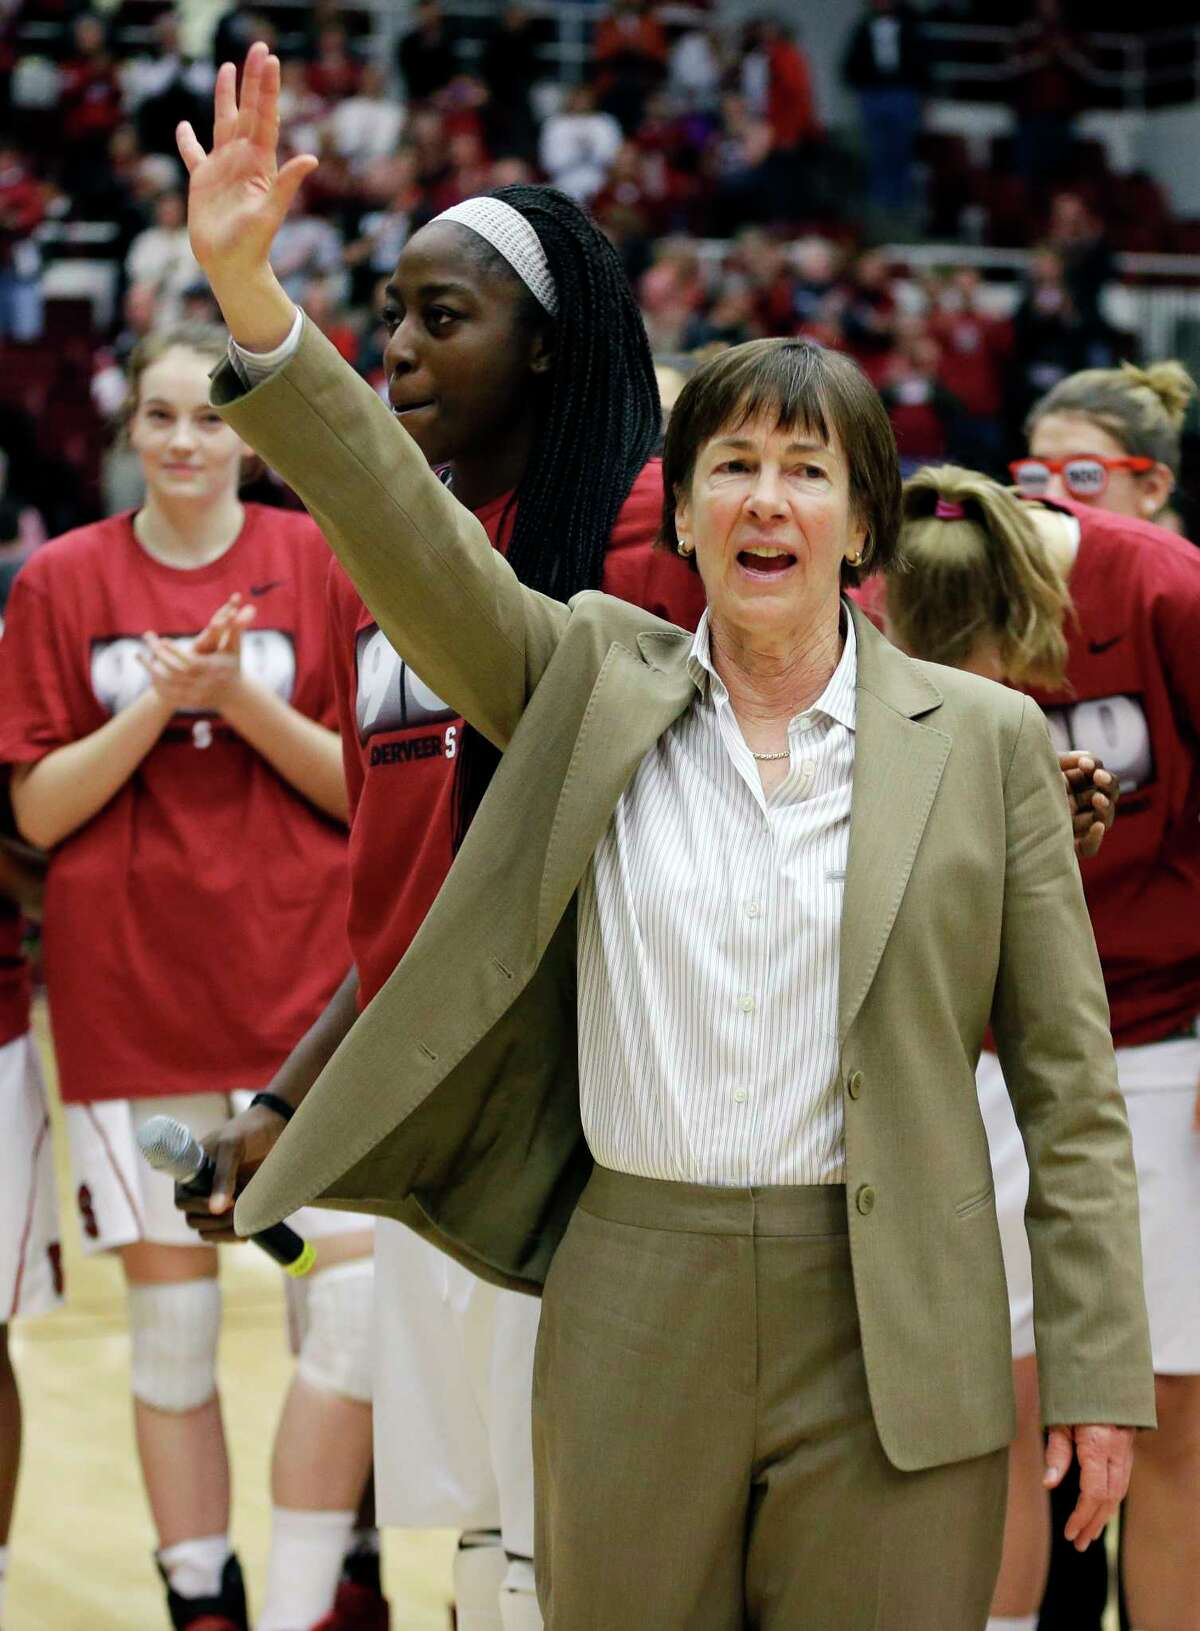 FILE - In this Dec. 14, 2013, file photo, Stanford coach Tara VanDerveer waves to fans after a ceremony in recognition of her 900 career wins, after the team's NCAA college basketball game against Gonzaga in Stanford, Calif. On Friday night when No. 8 Stanford hosts USC, Vanderveer is poised to become just the second NCAA women's coach to enter the 1,000 wins club, alongside the late Pat Summitt. (AP Photo/Ben Margot, File) ORG XMIT: FX202